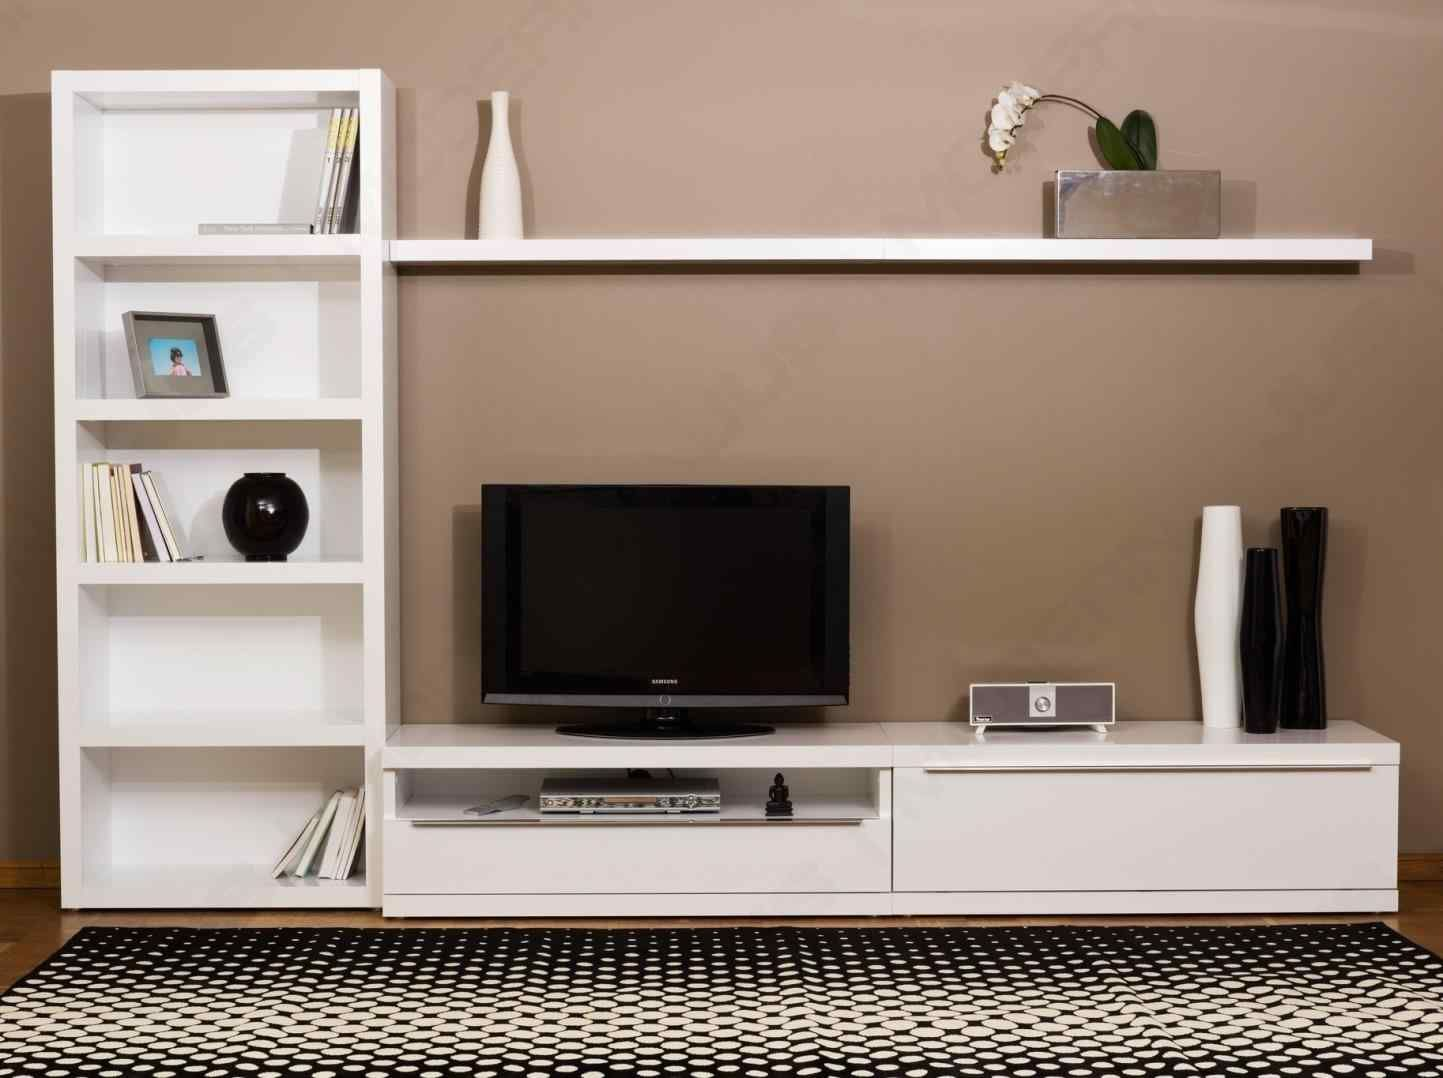 20 Stunning Tv Stands Ideas For Wall Mounted Tv Bre